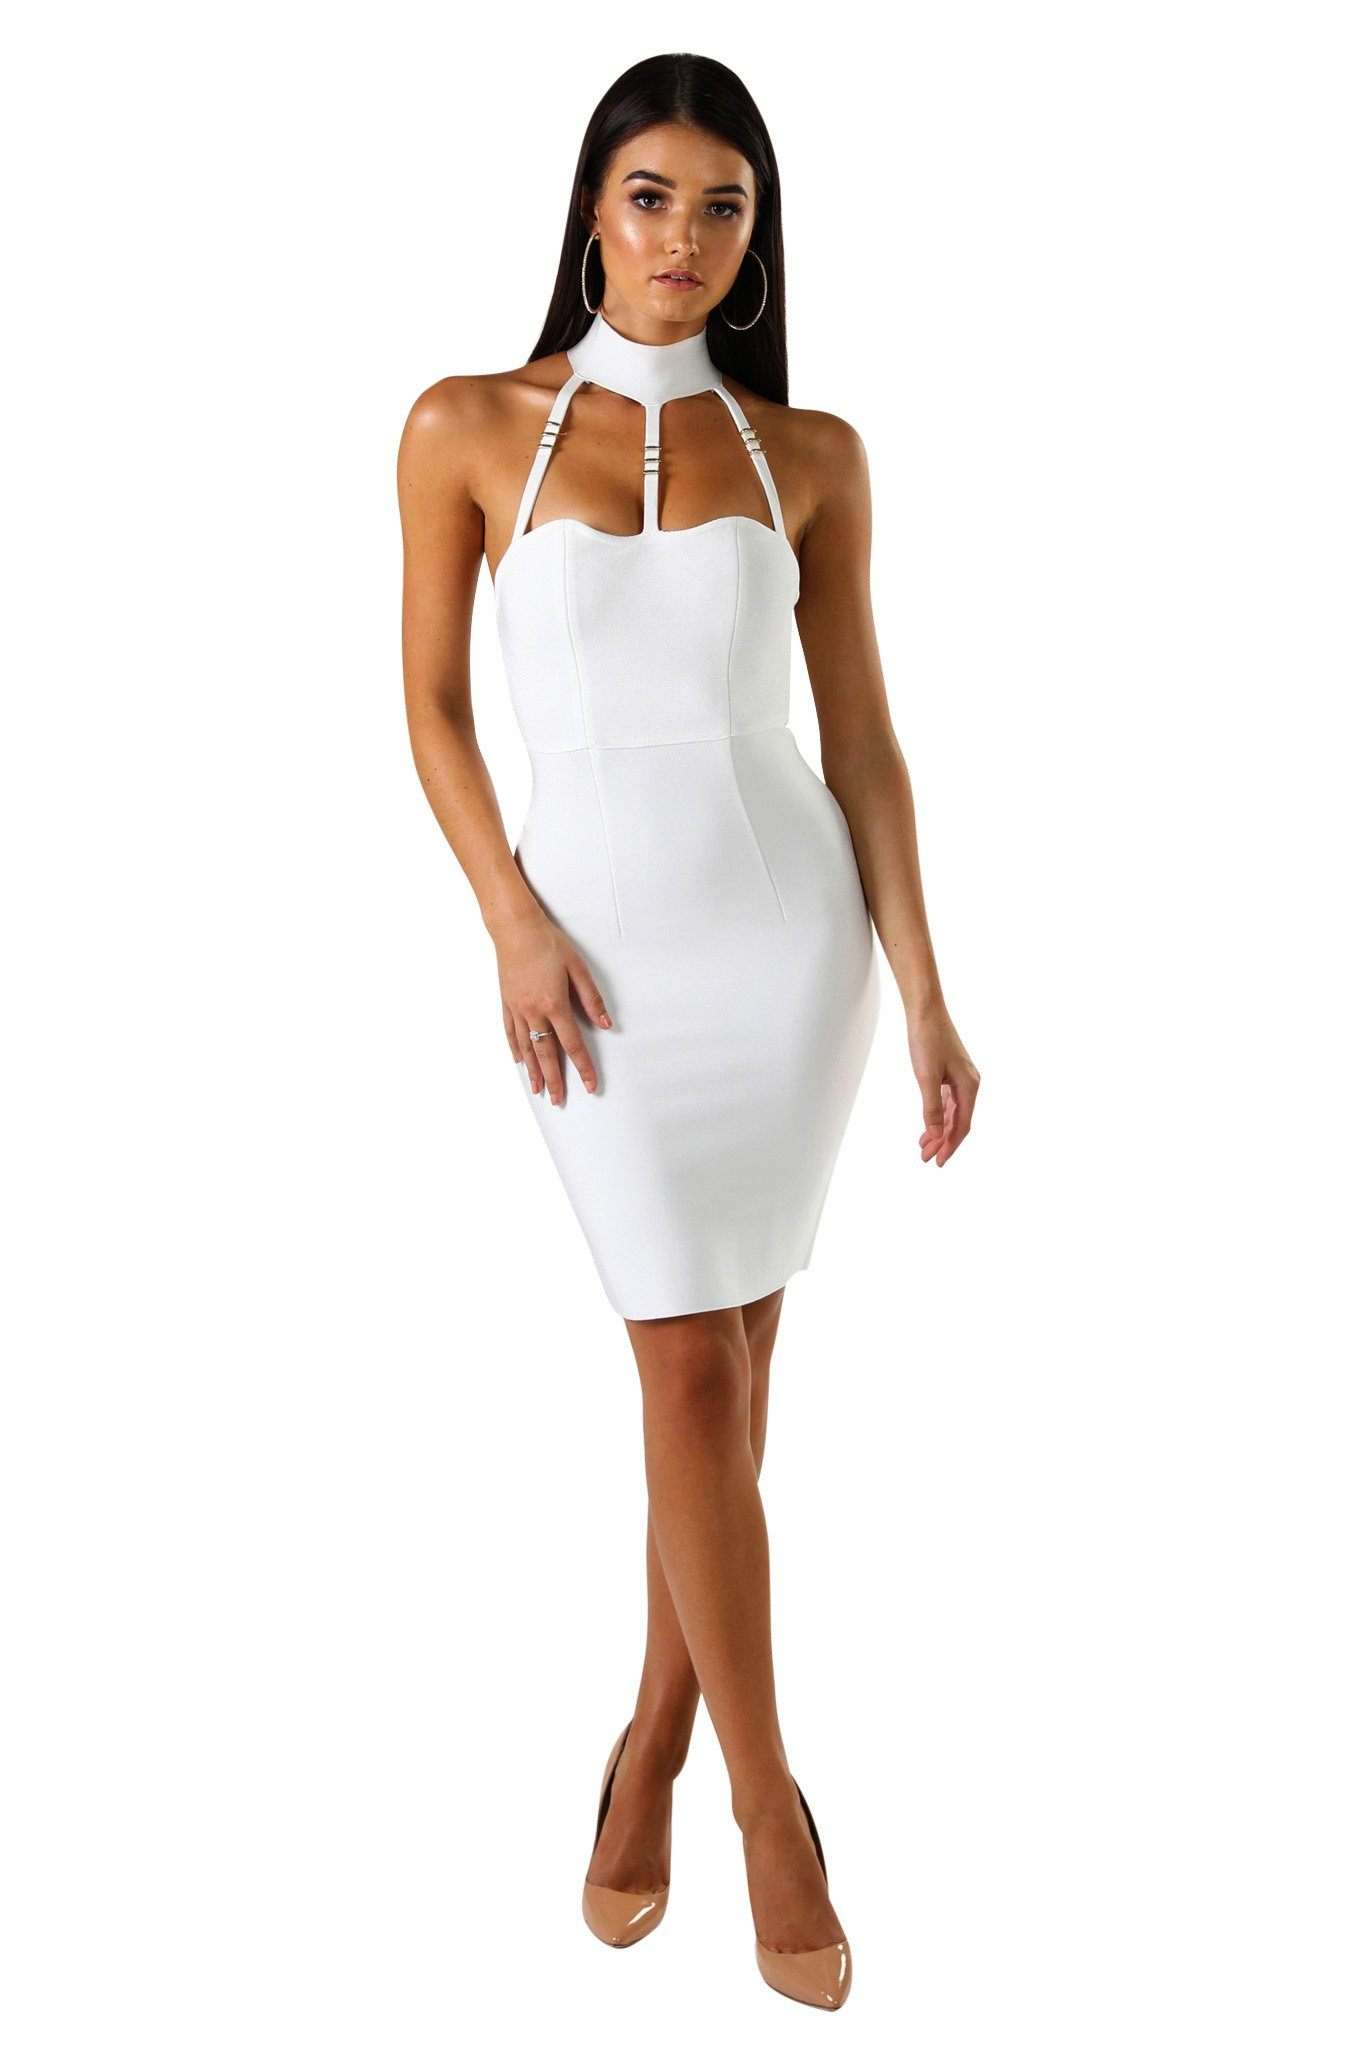 White sleeveless knee-length bandage dress with strappy choker neck design